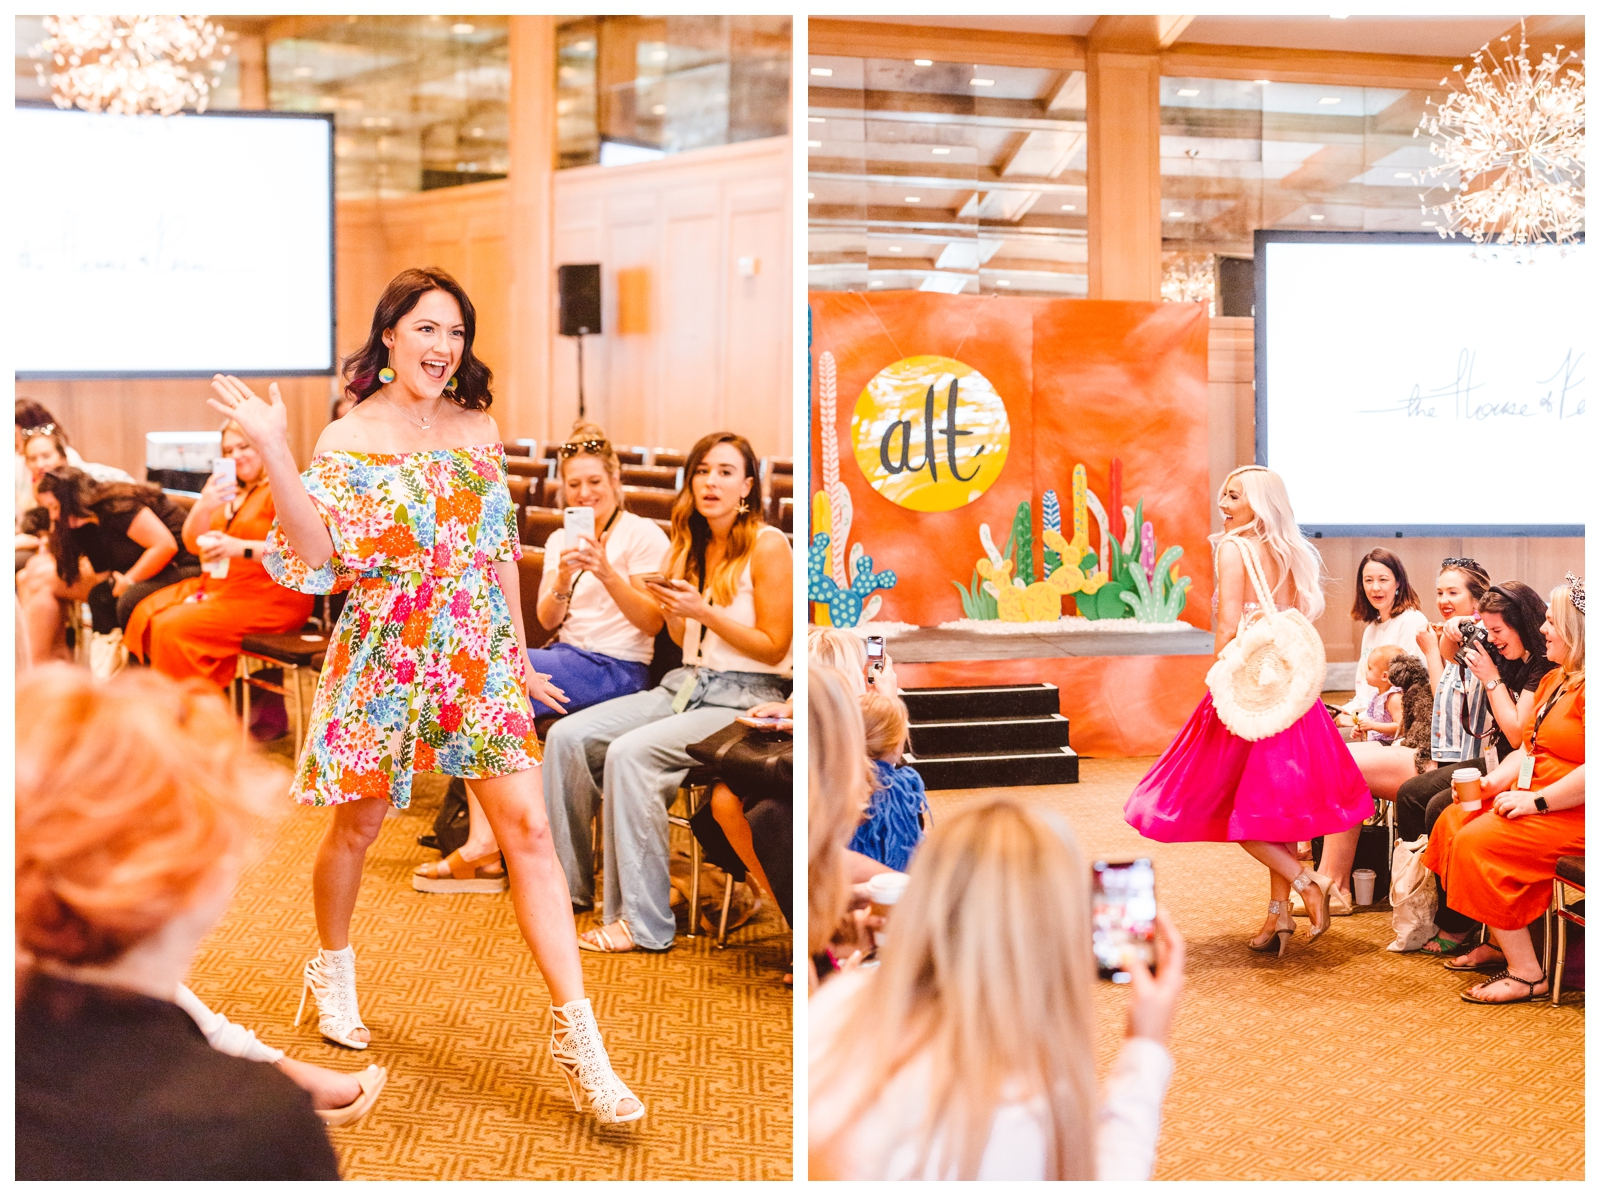 the-house-of-perna-runway-show-at-alt-summit-palm-springs-brooke-michelle-photography-6-photo.jpg